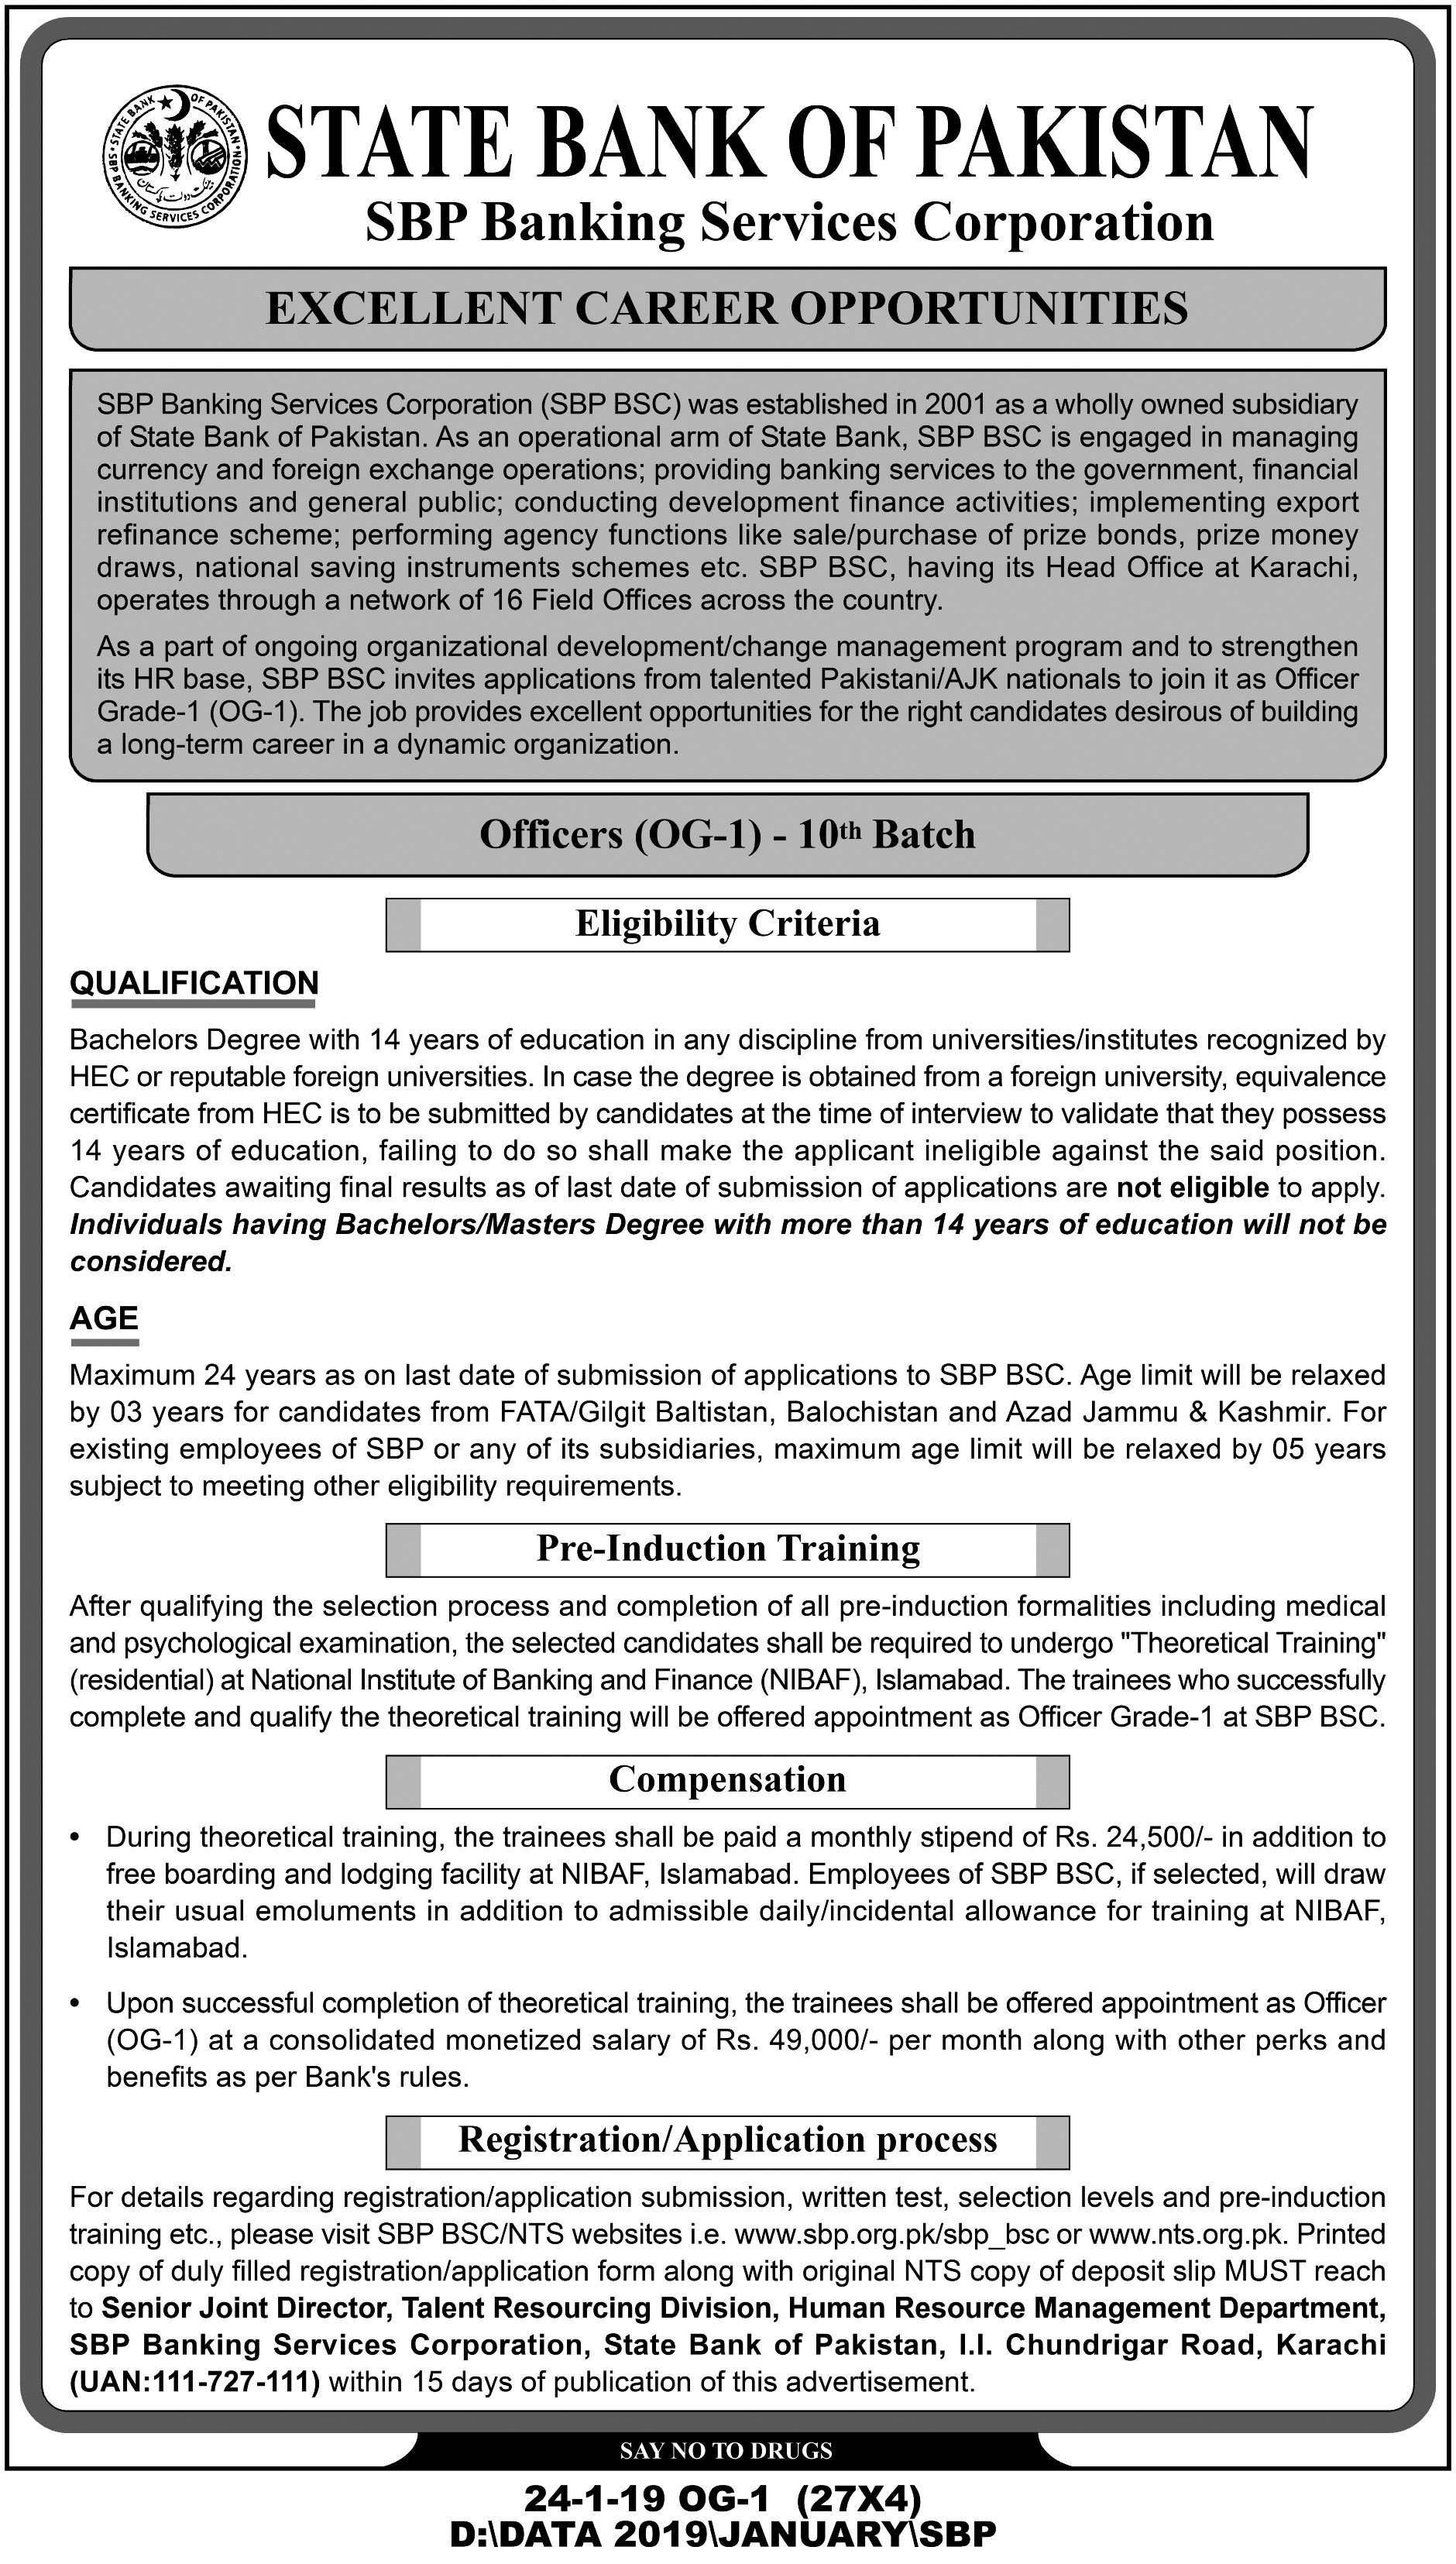 SBP Pakistan OG 1 Officers Jobs 2020 NTS Application Form Roll No Slip